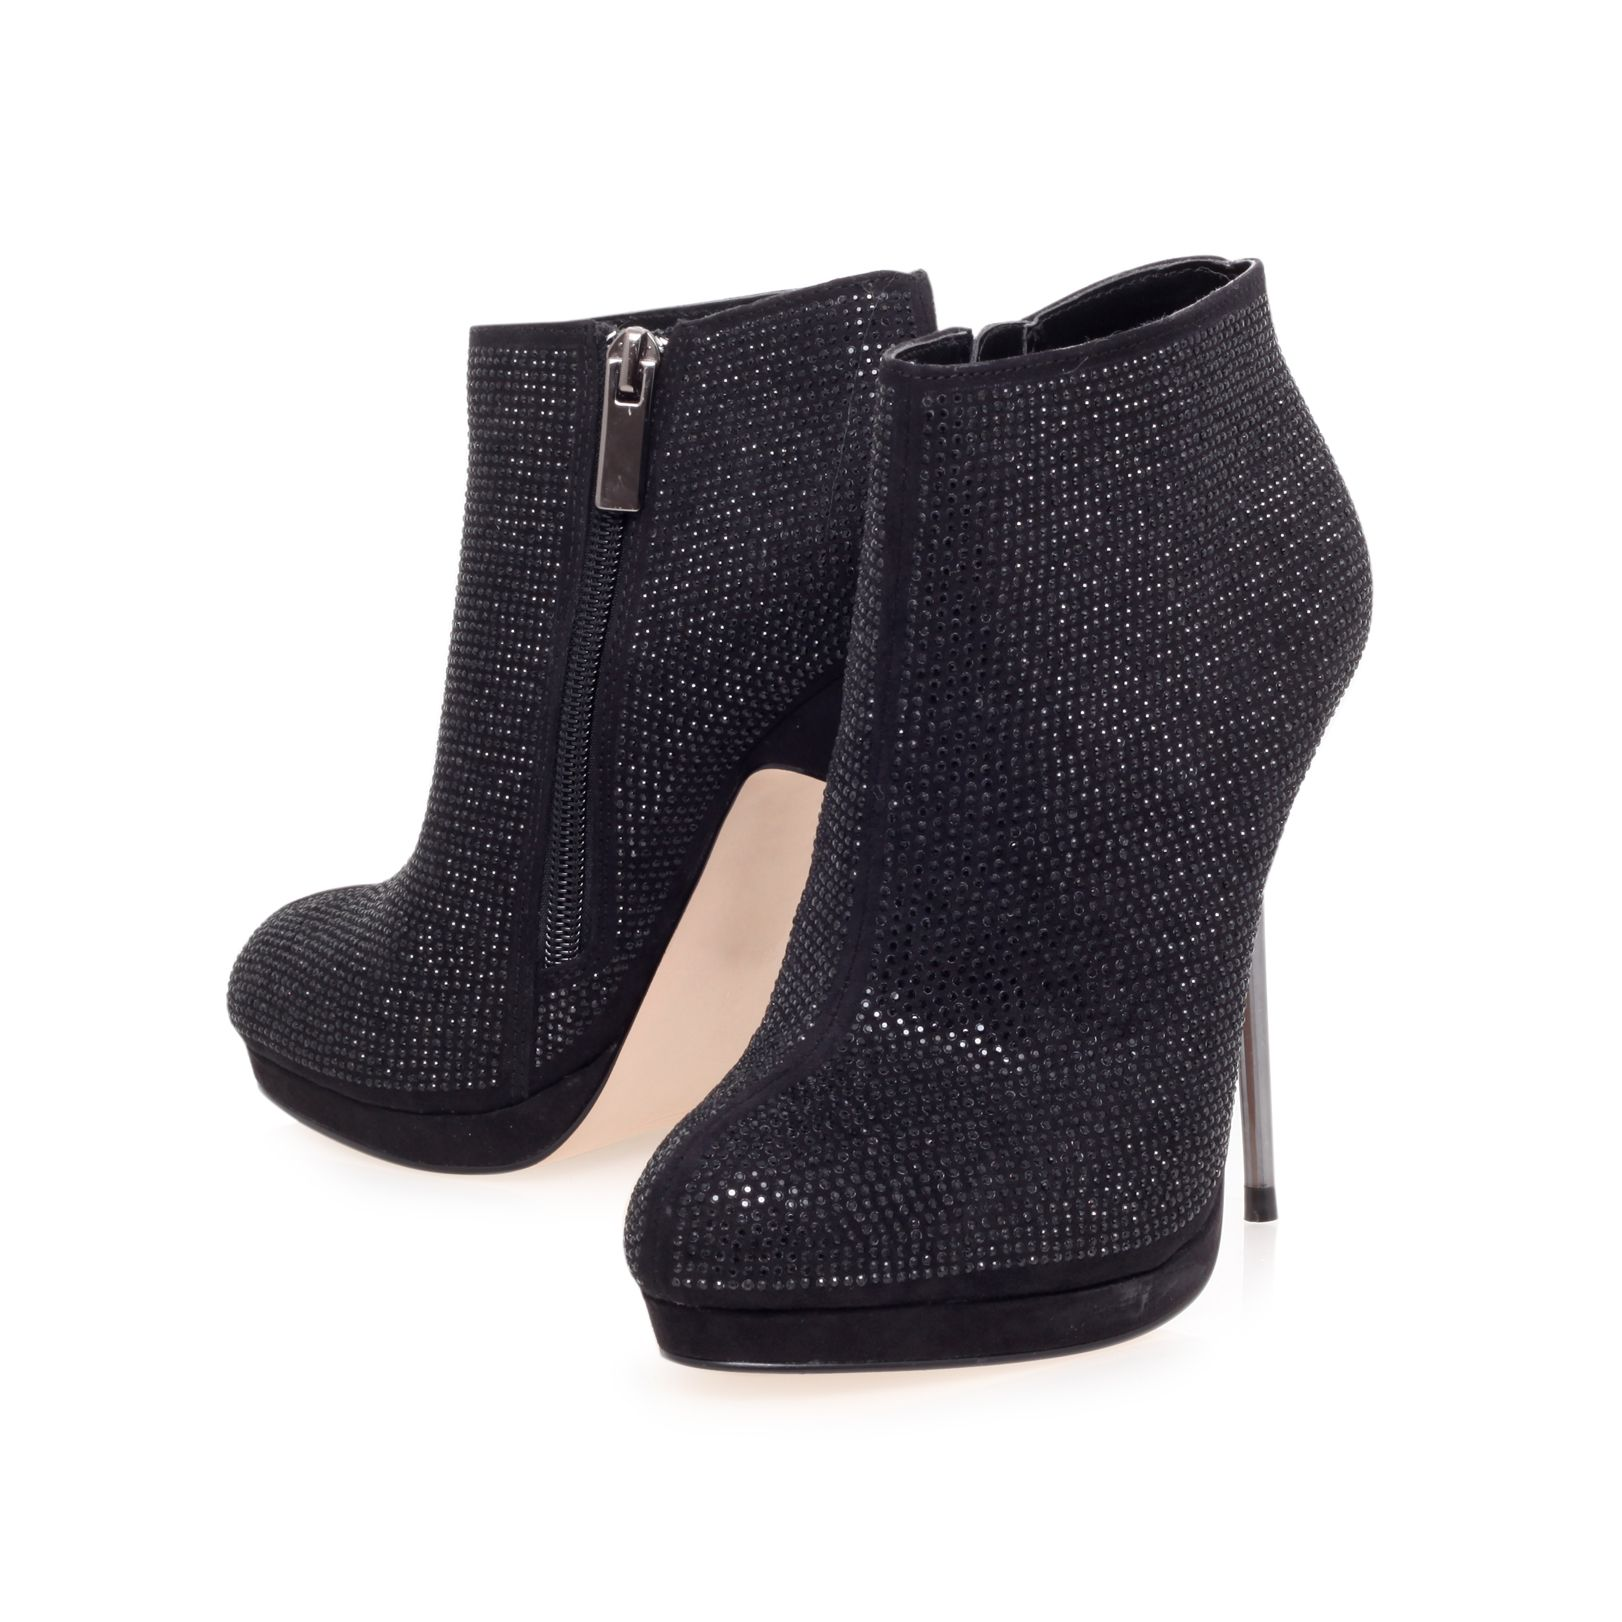 Giggle high heel ankle boots